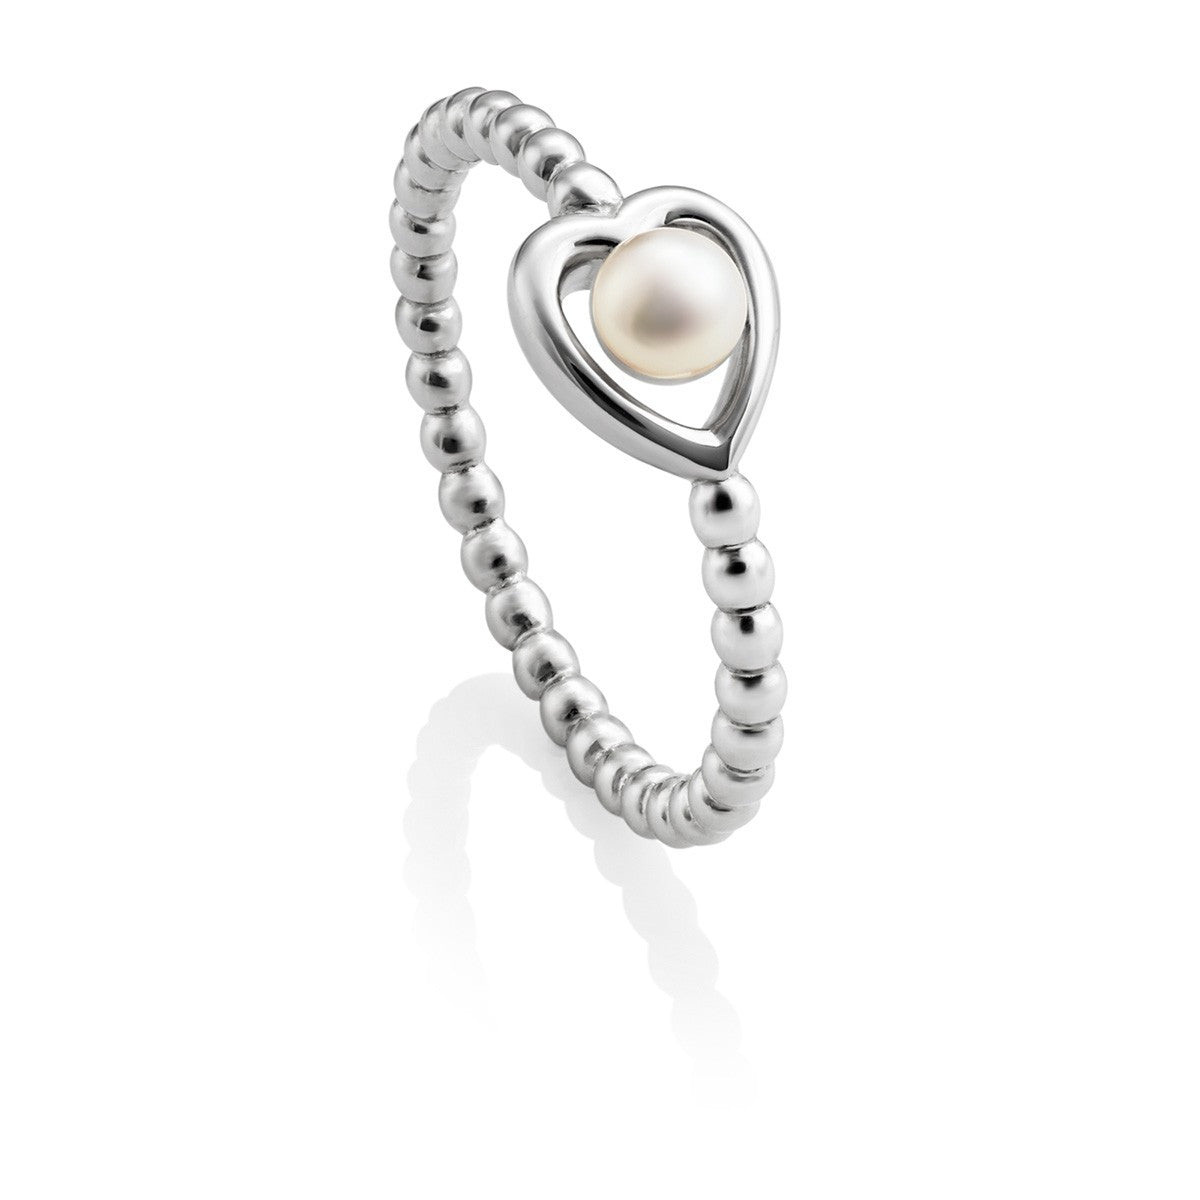 Aphrodite Heart Jersey Pearl Ring - CRED Jewellery - Fairtrade Jewellery - 2